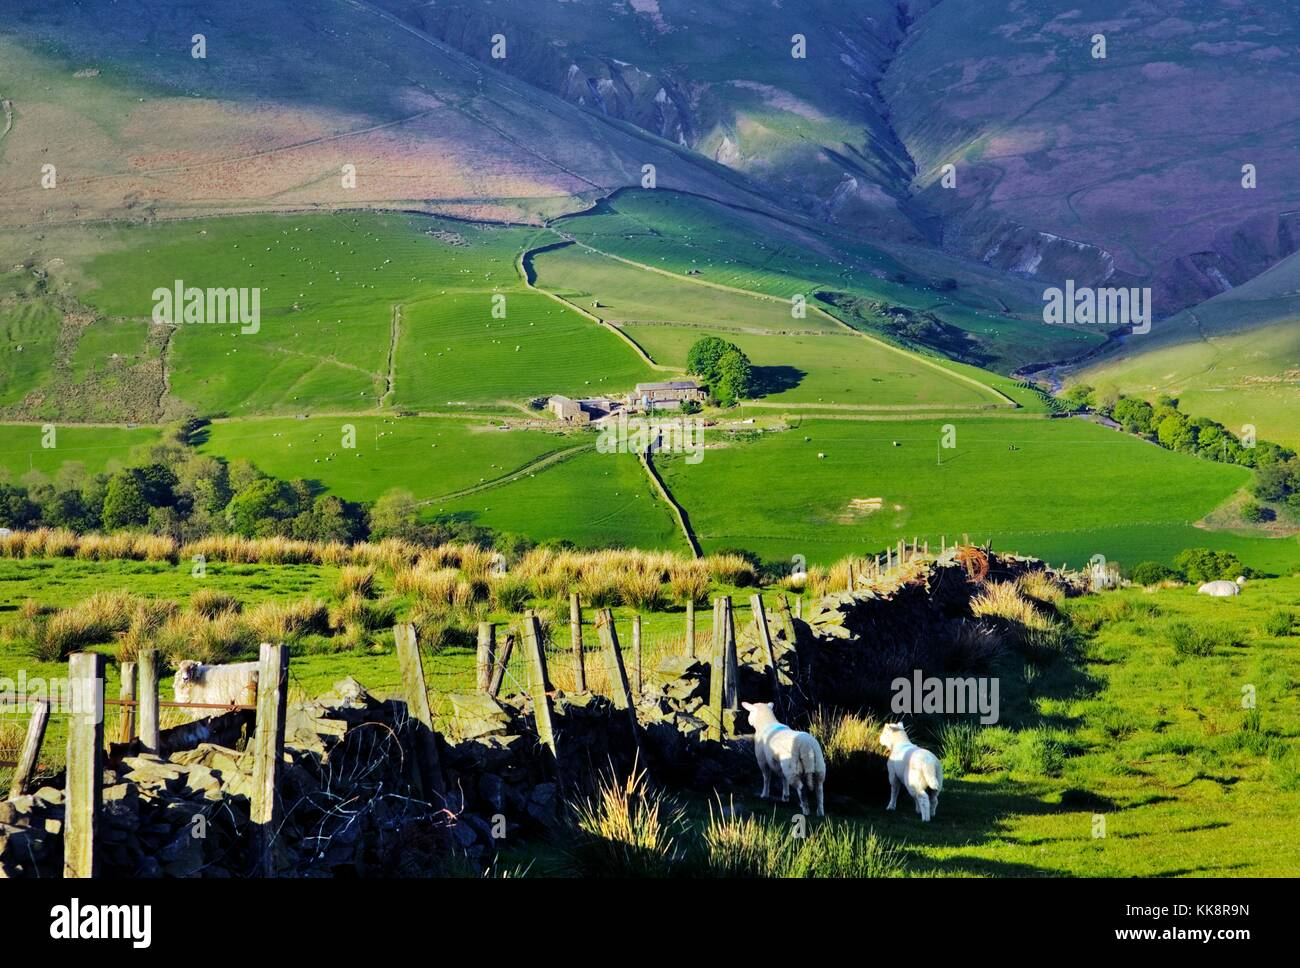 Sheep grazing on hill farm in the Howgill Fells, east Cumbria, 2 miles south of Tebay, in the Lake District, north - Stock Image